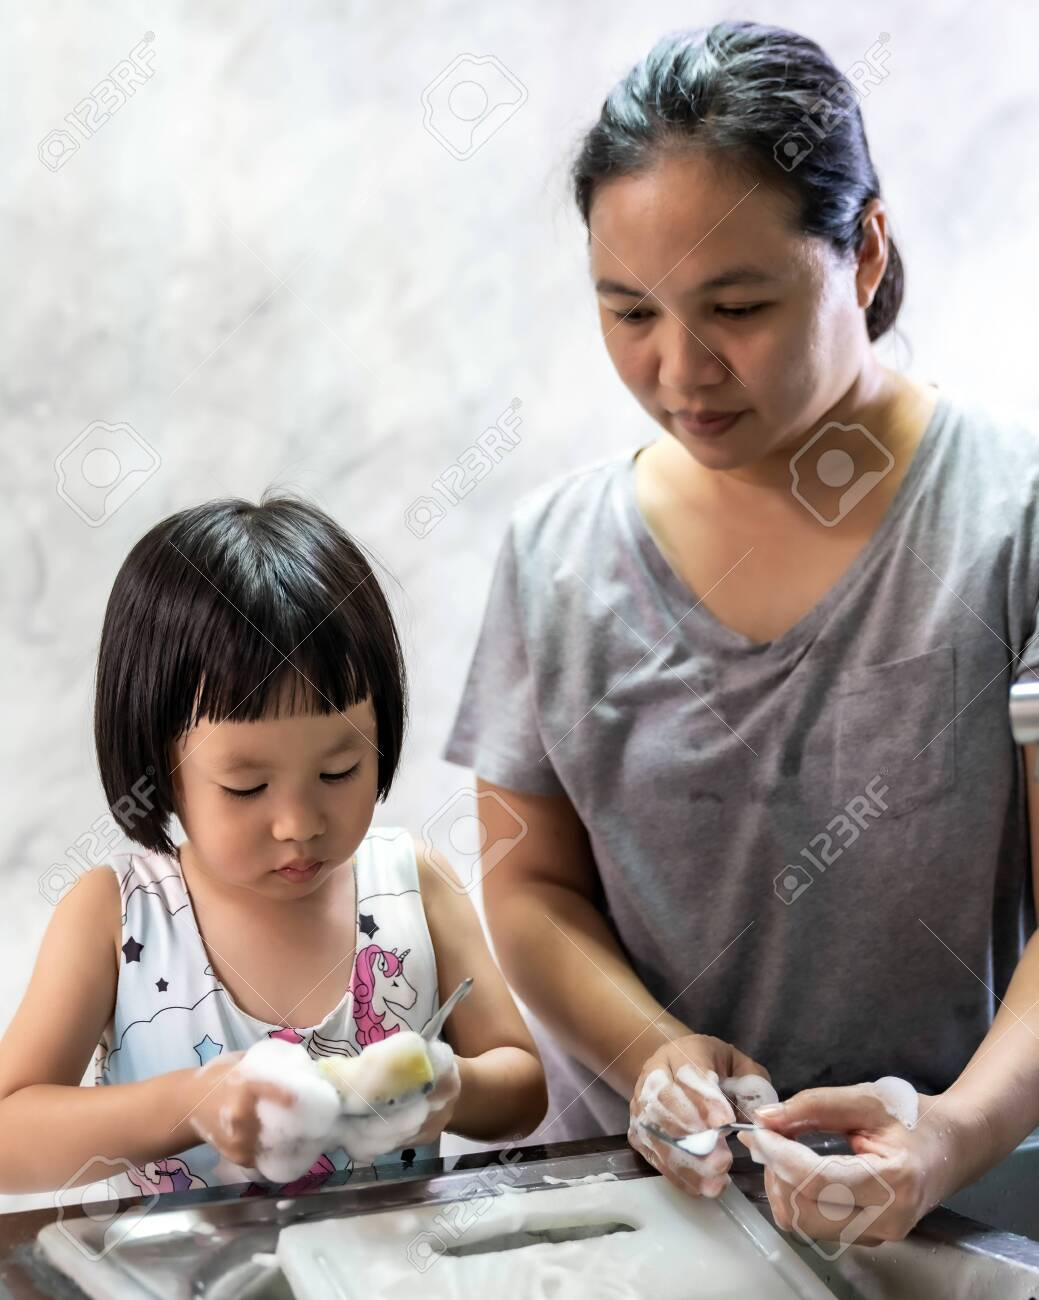 Asian girl washing dish and tableware with her mom, housework for child make executive function for kid. Houseworking for kid lifstyle and family concept. - 150854585